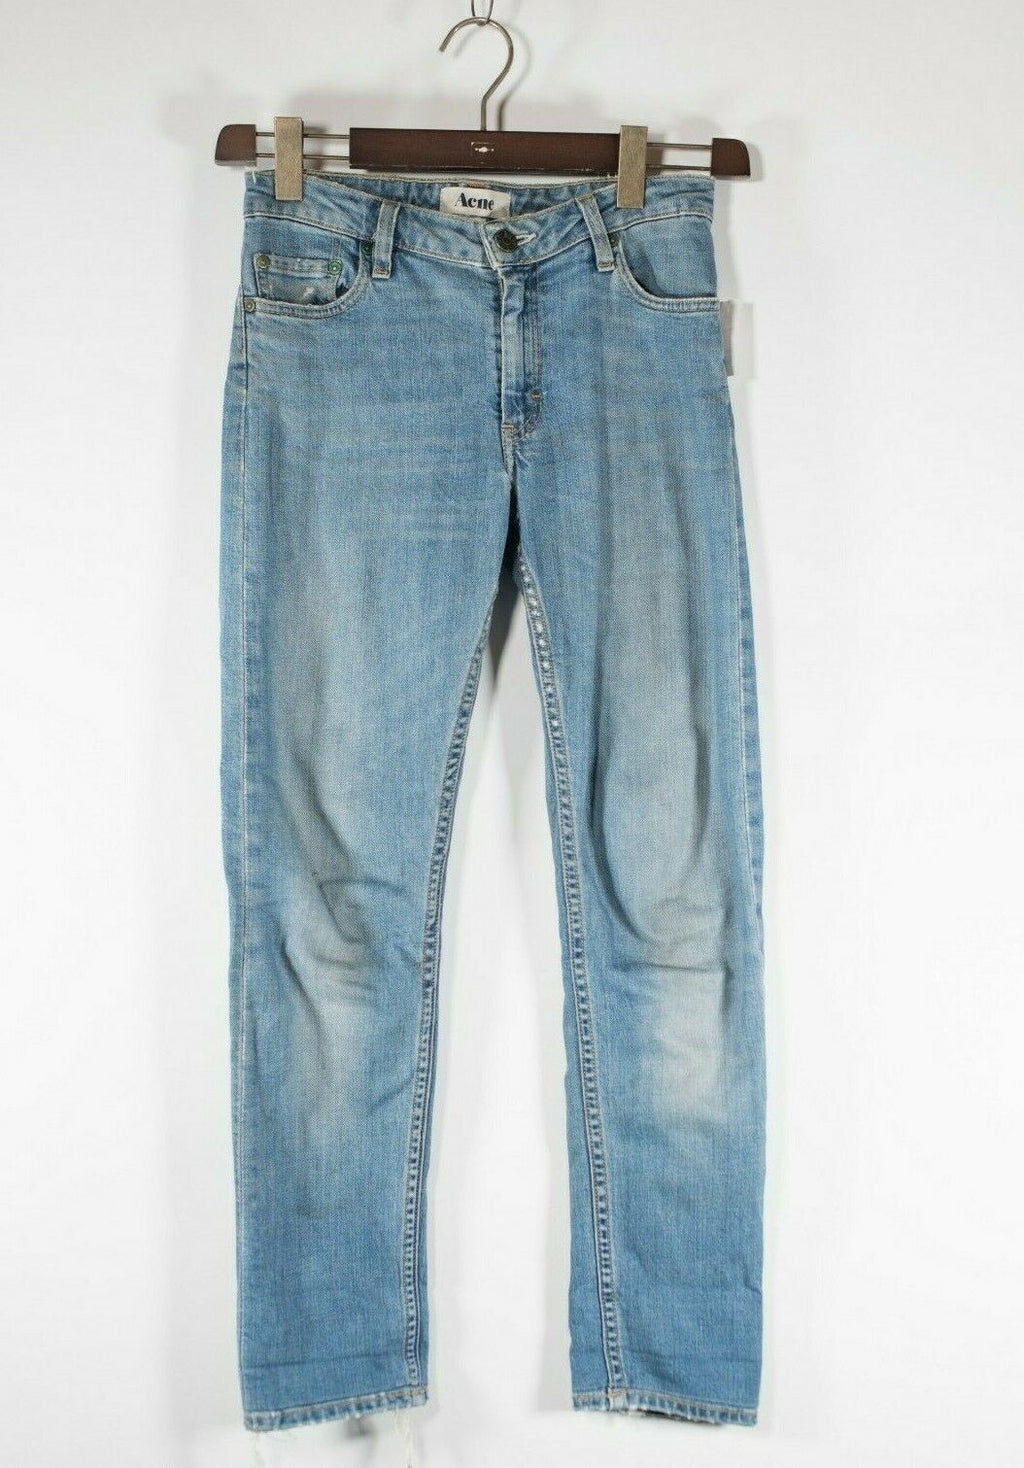 Acne Women's Size 27 Small Blue Jeans Cotton Blend Slim Fit Straight Leg Denim